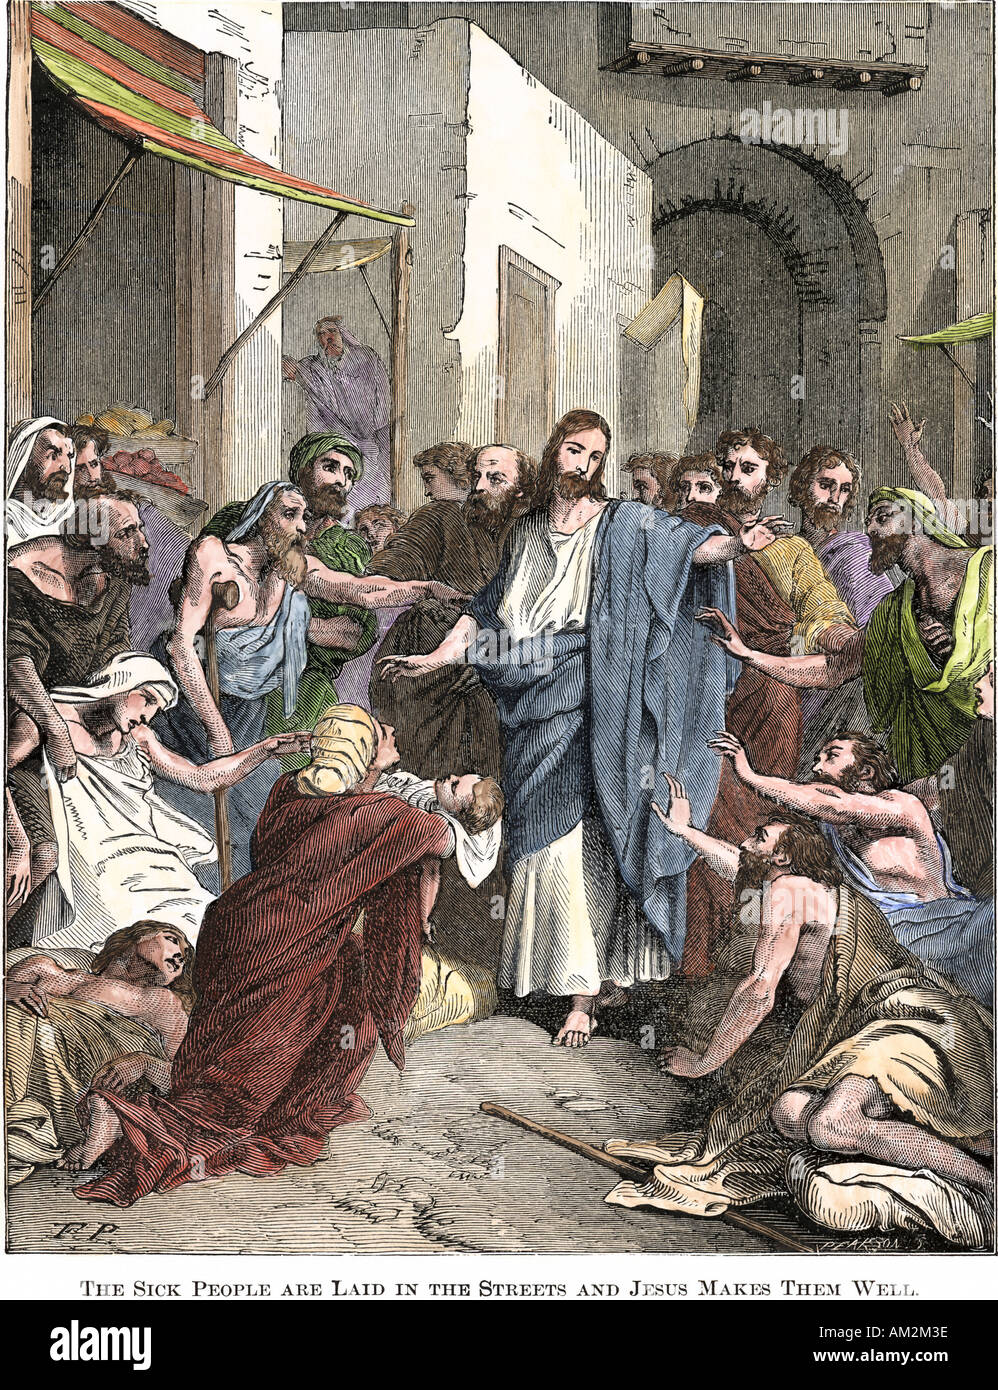 Sick people are laid in the streets for Jesus to make well. Hand-colored woodcut - Stock Image